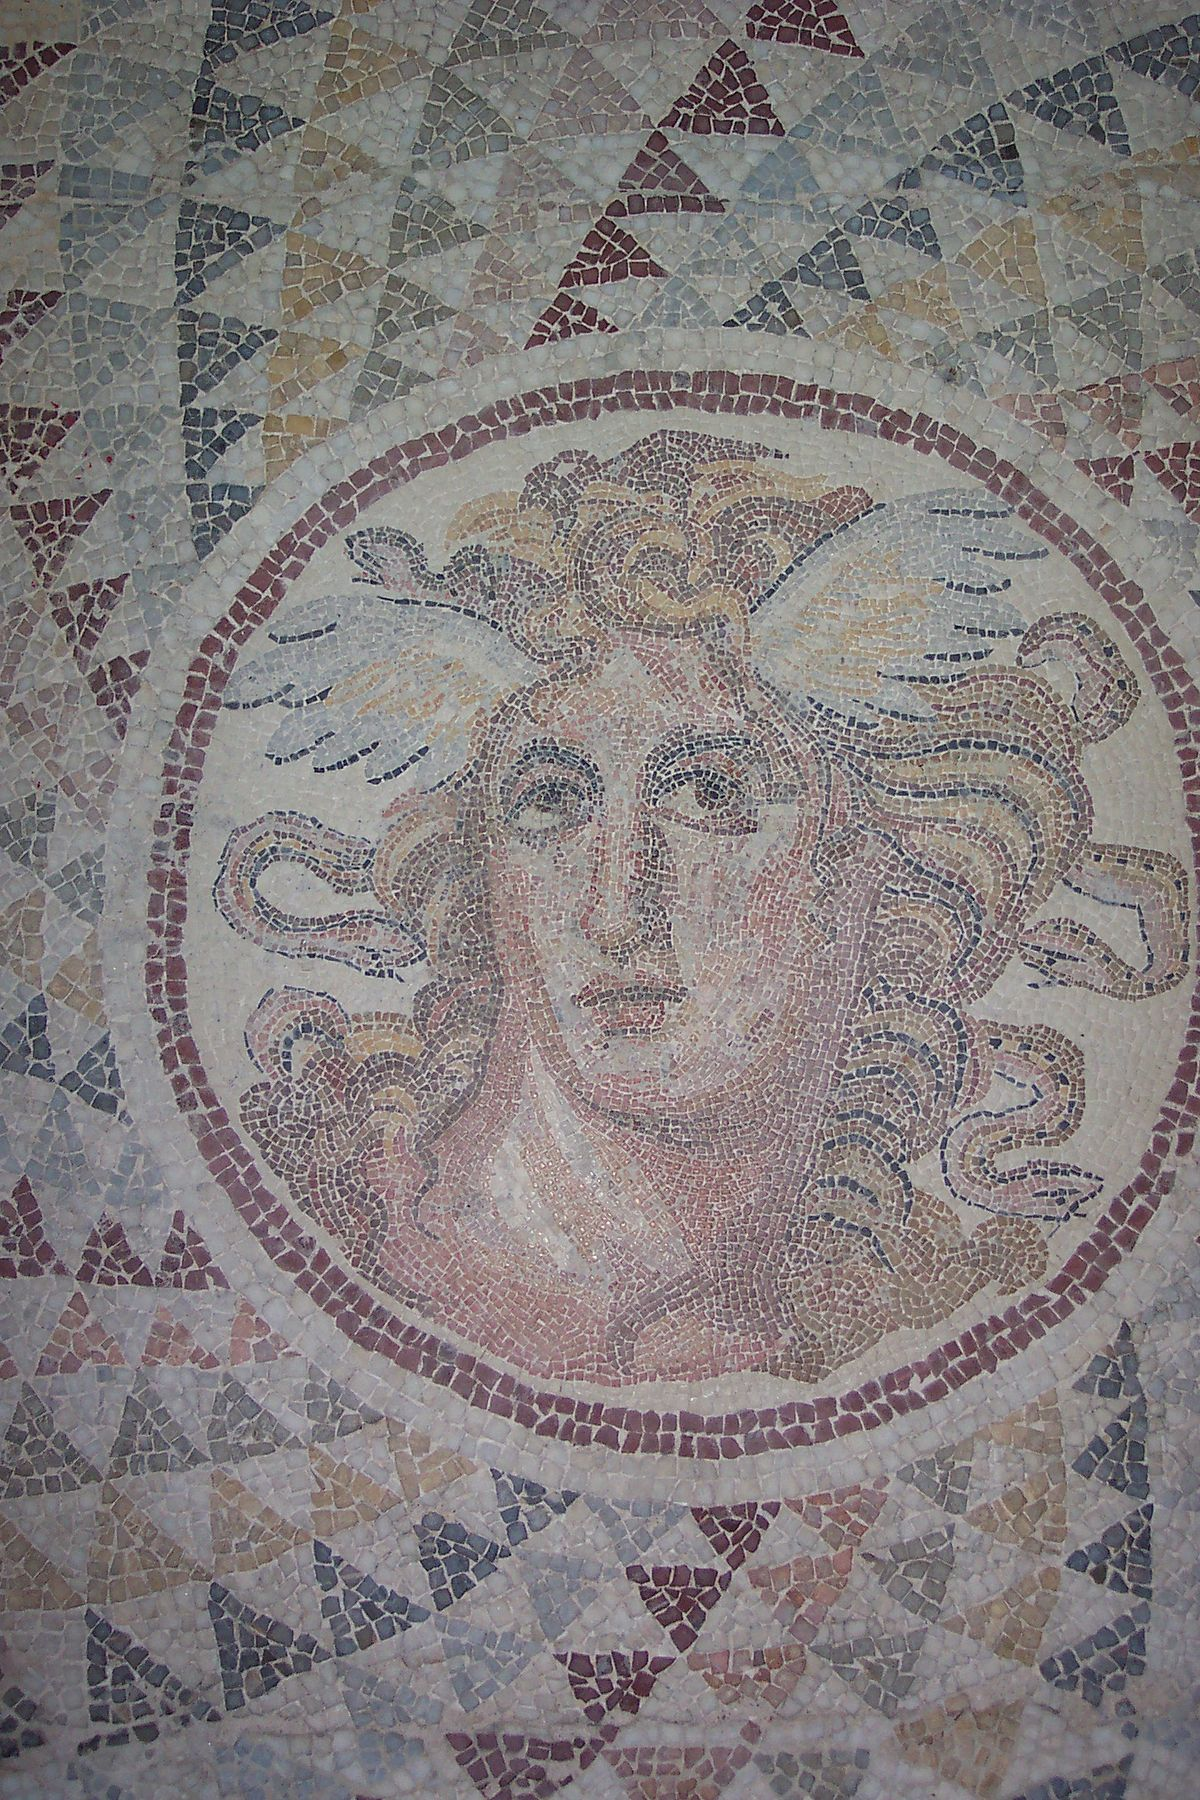 Cultural depictions of Medusa and Gorgons - Wikipedia | 1200 x 1800 jpeg 562kB